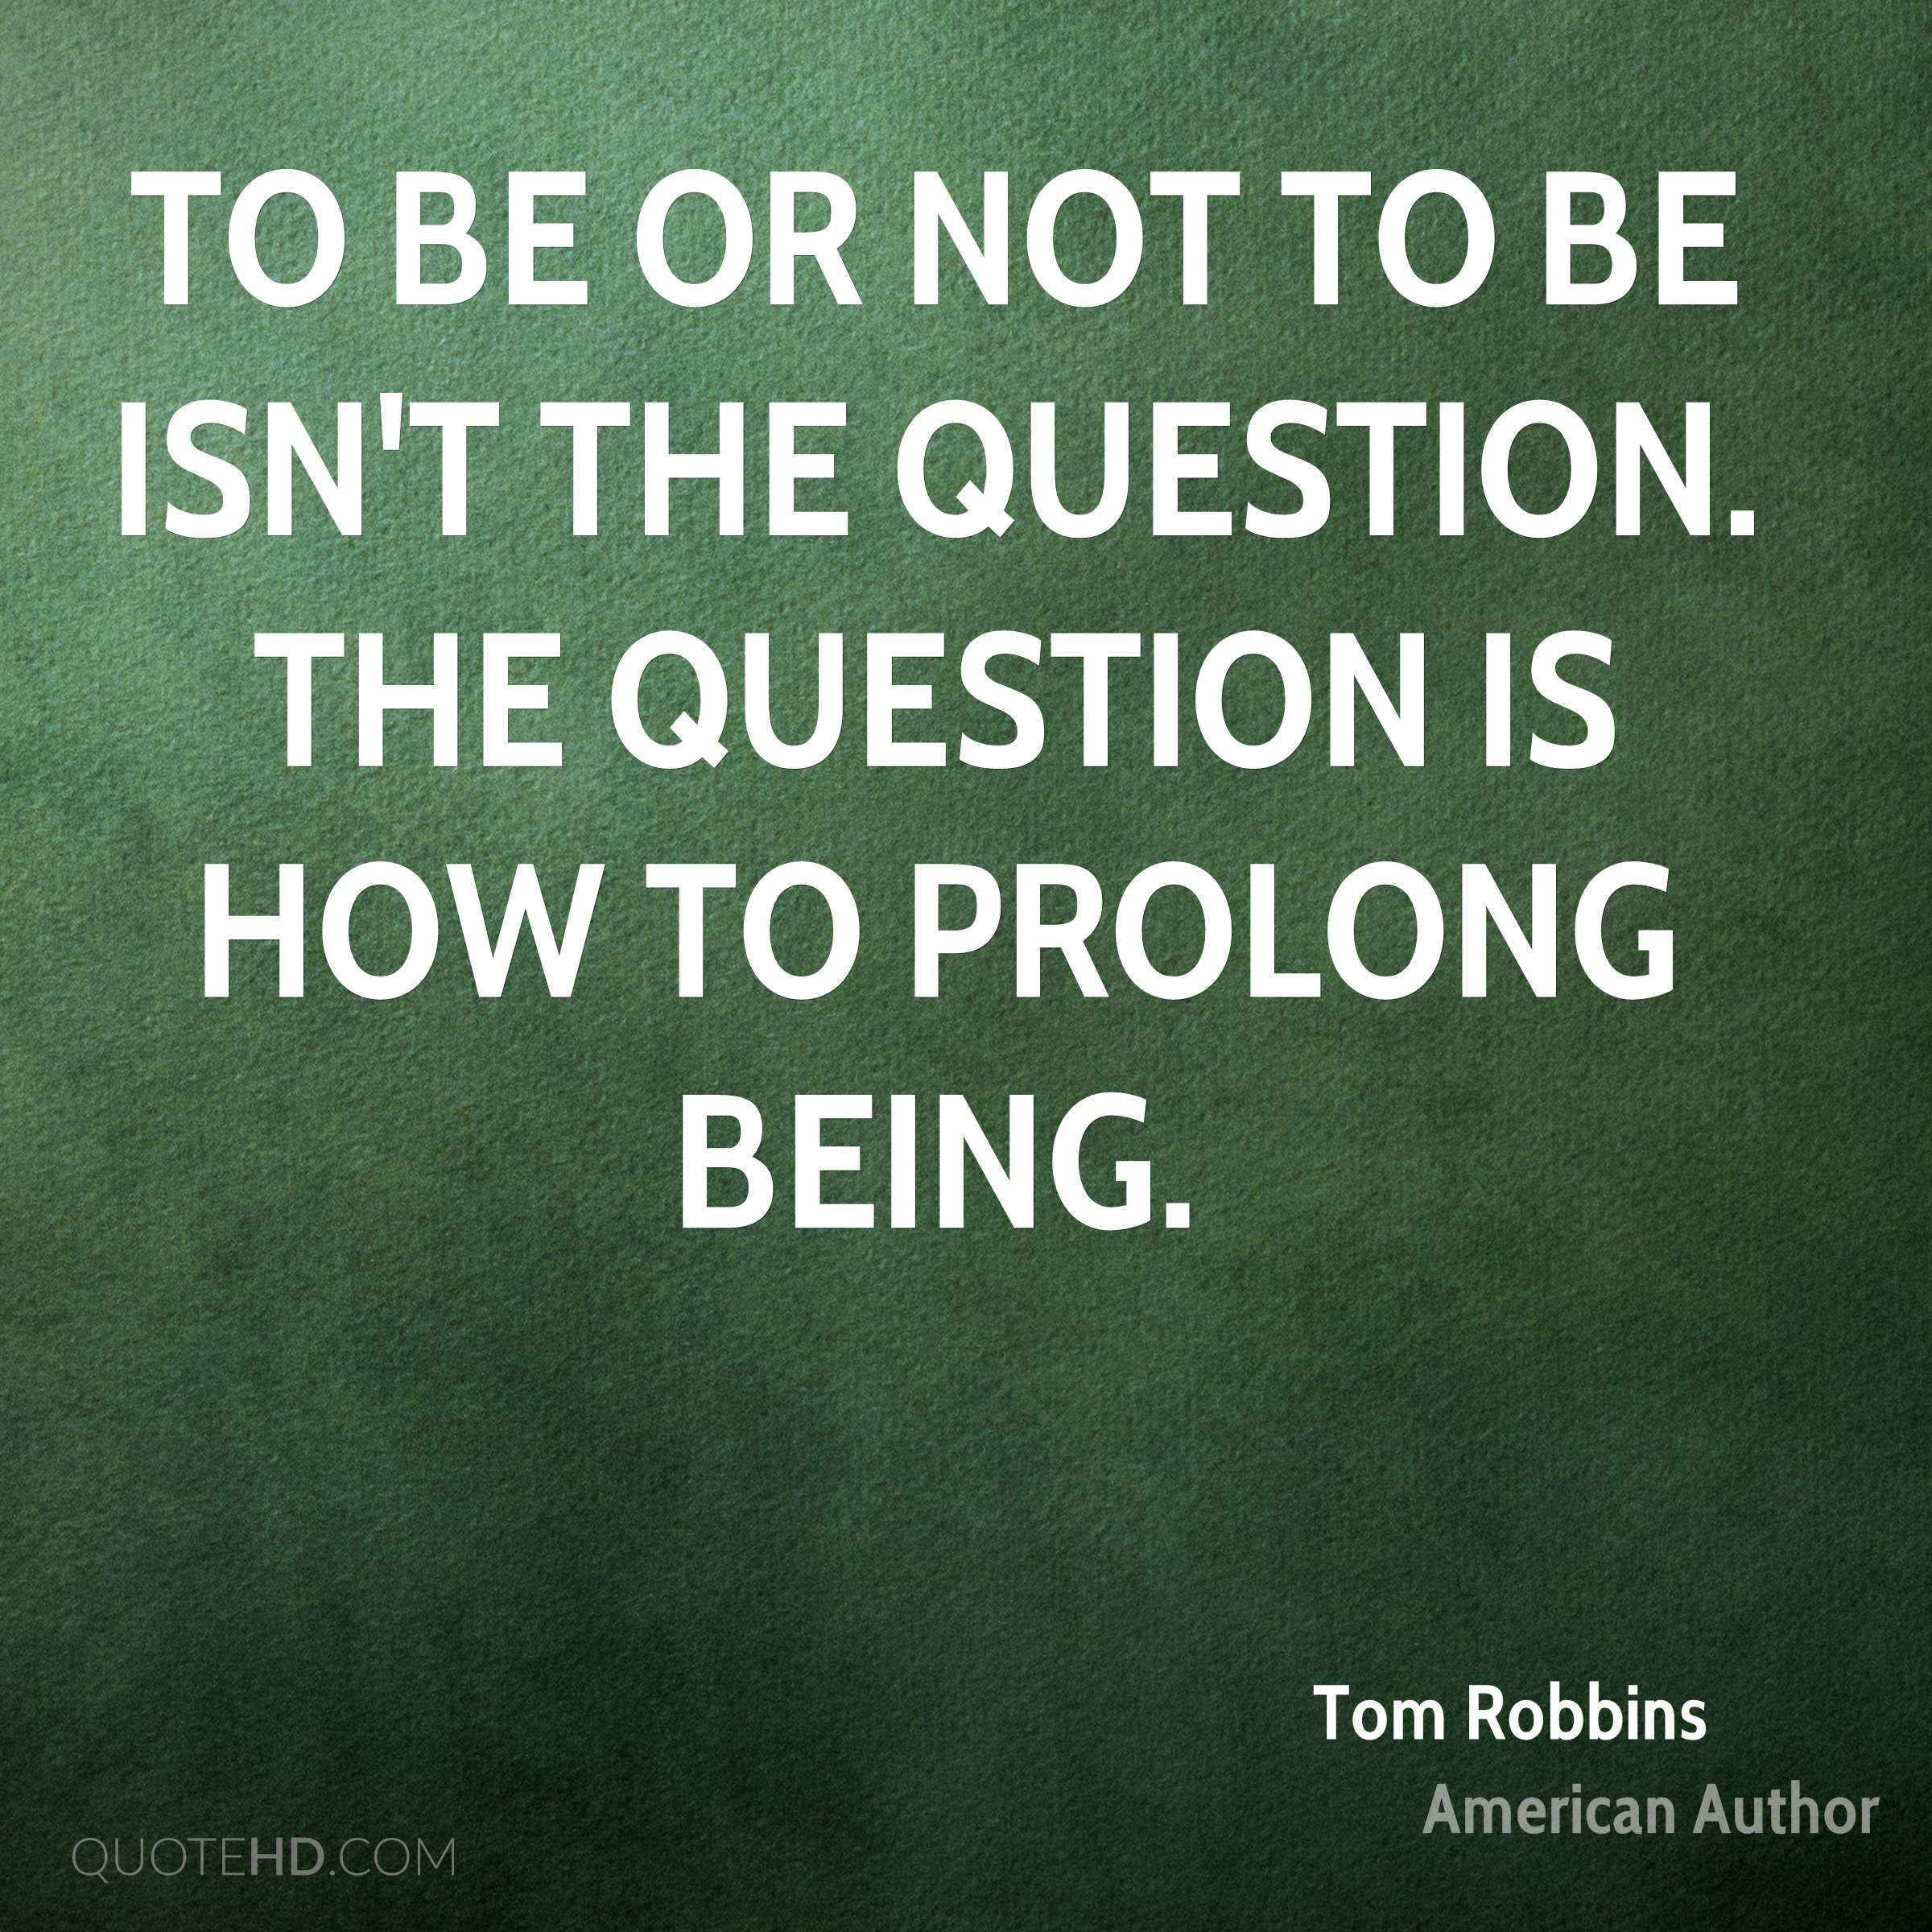 To be or not to be isn't the question. The question is how to prolong being.